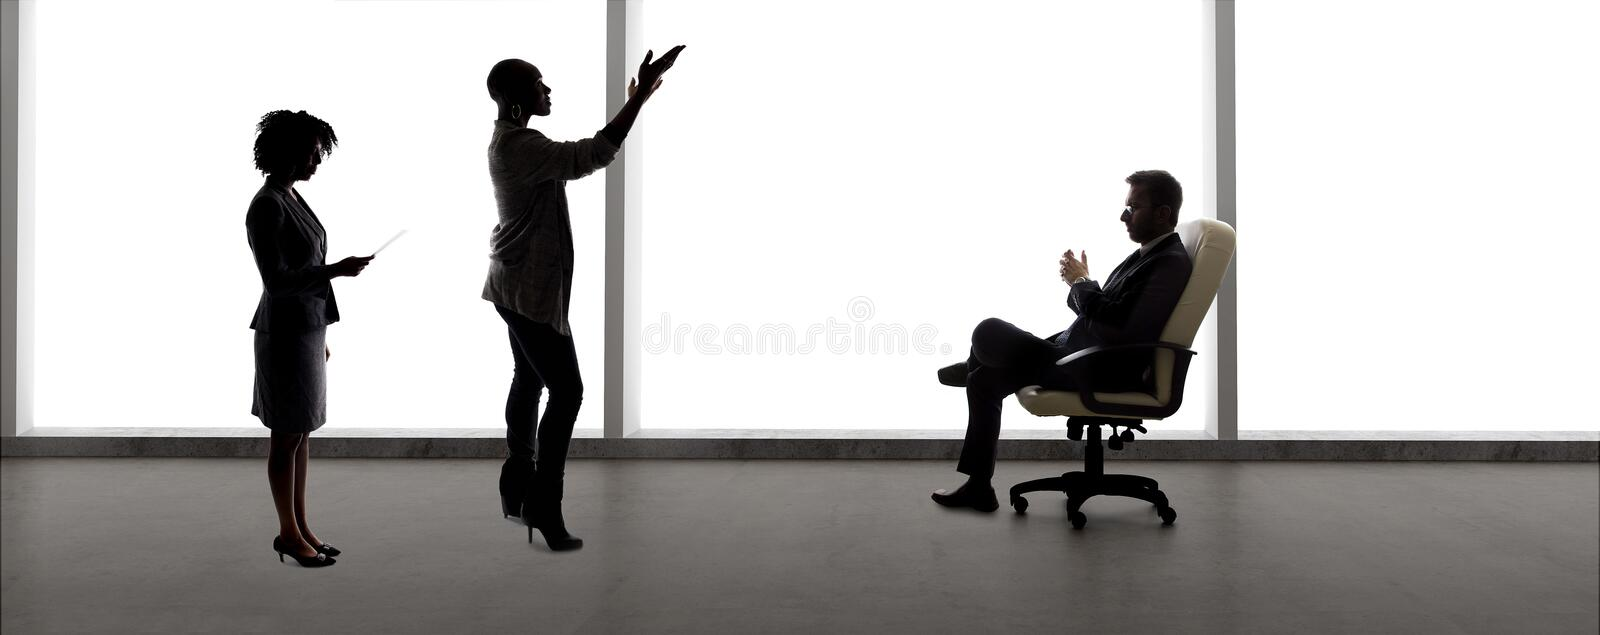 Silhouettes of Female Actors in an Audition with a Casting Director stock photos